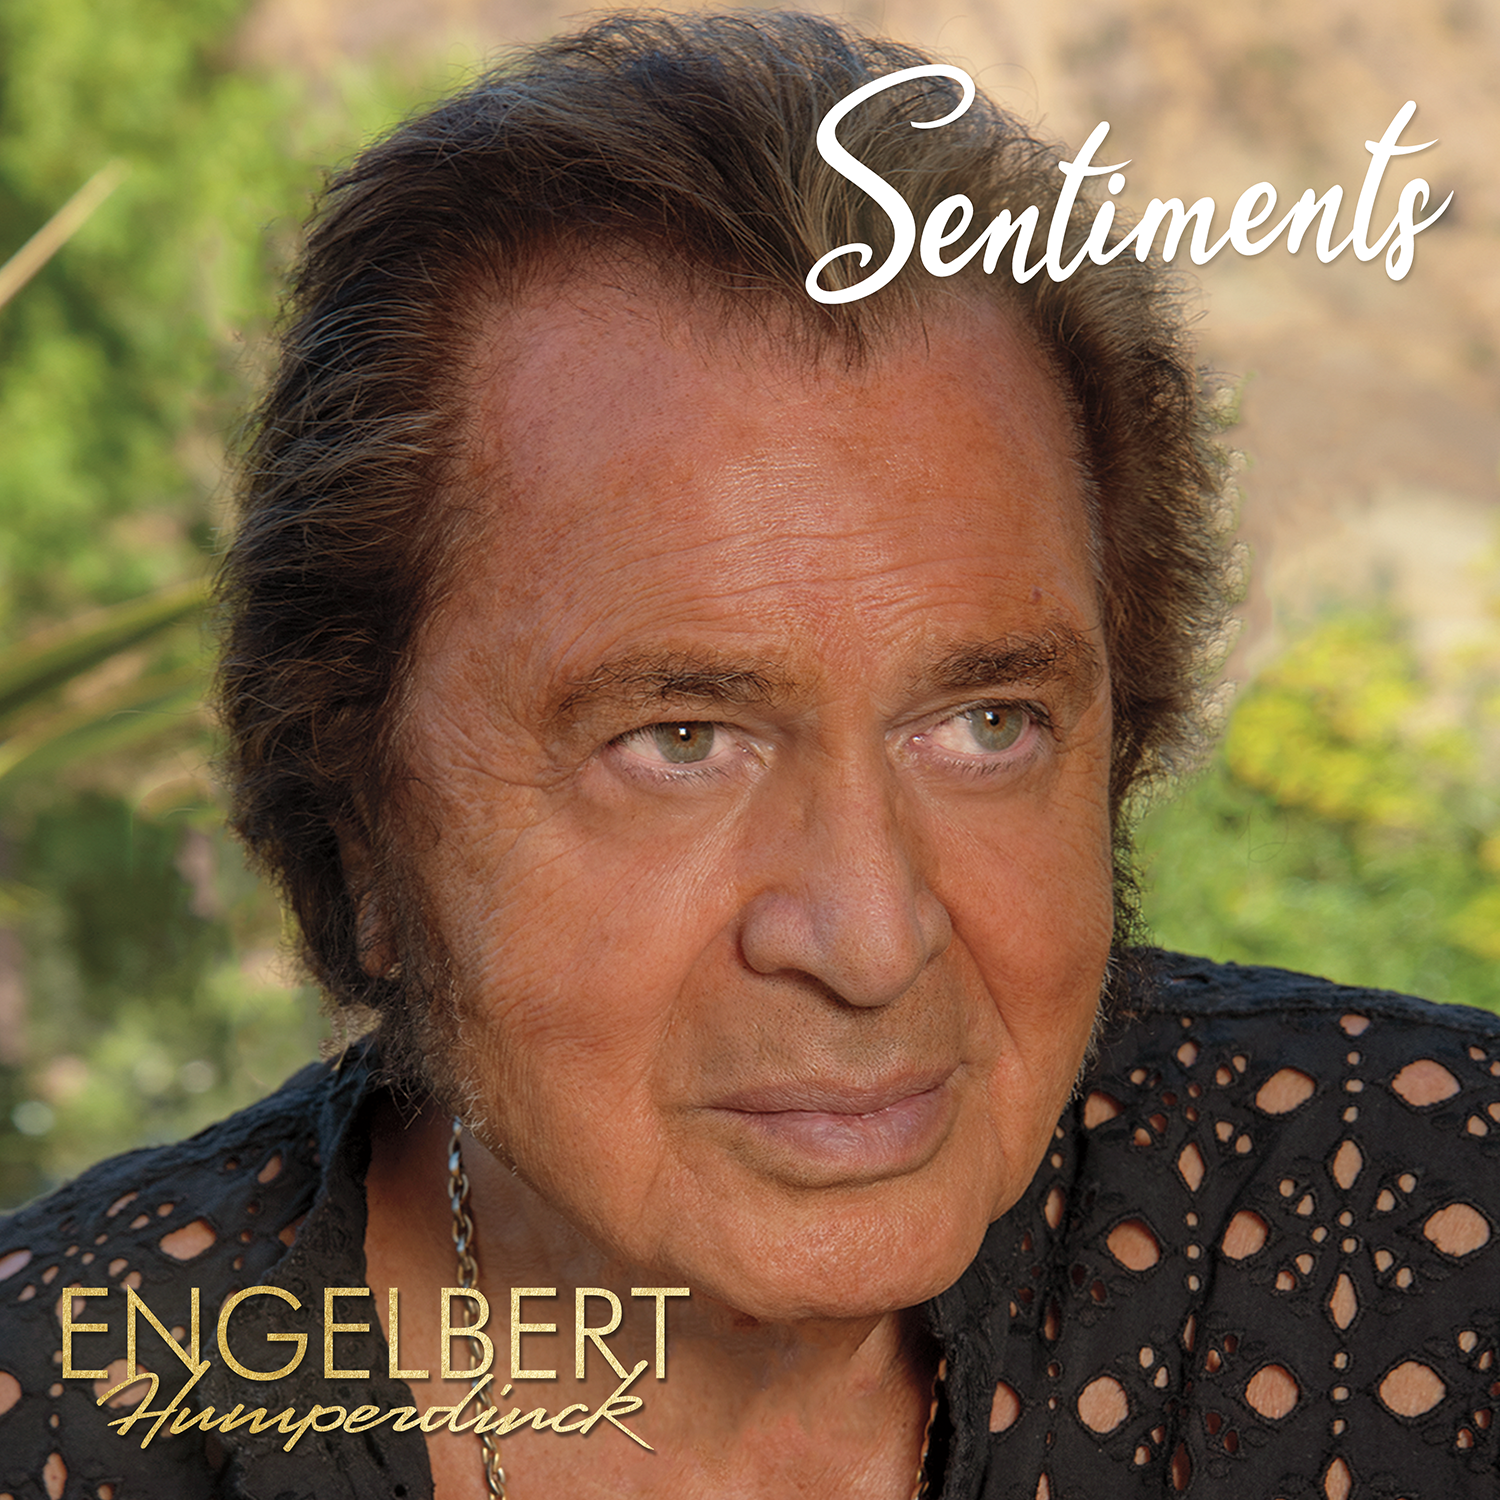 ENGELBERT HUMPERDINCK – Sentiments CD